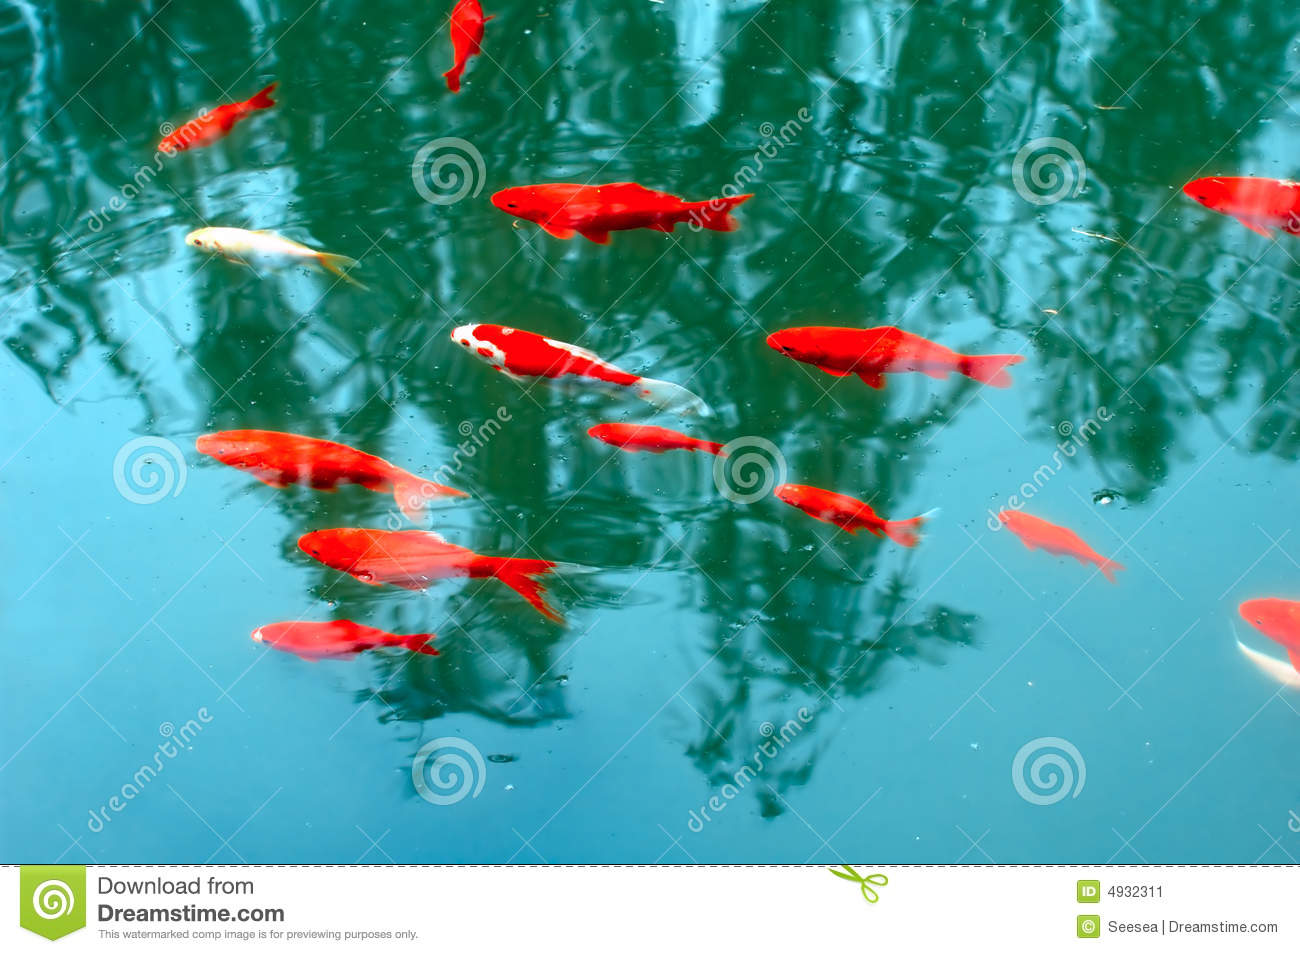 Koi fish stock image image 4932311 for Fish dream meaning pregnancy